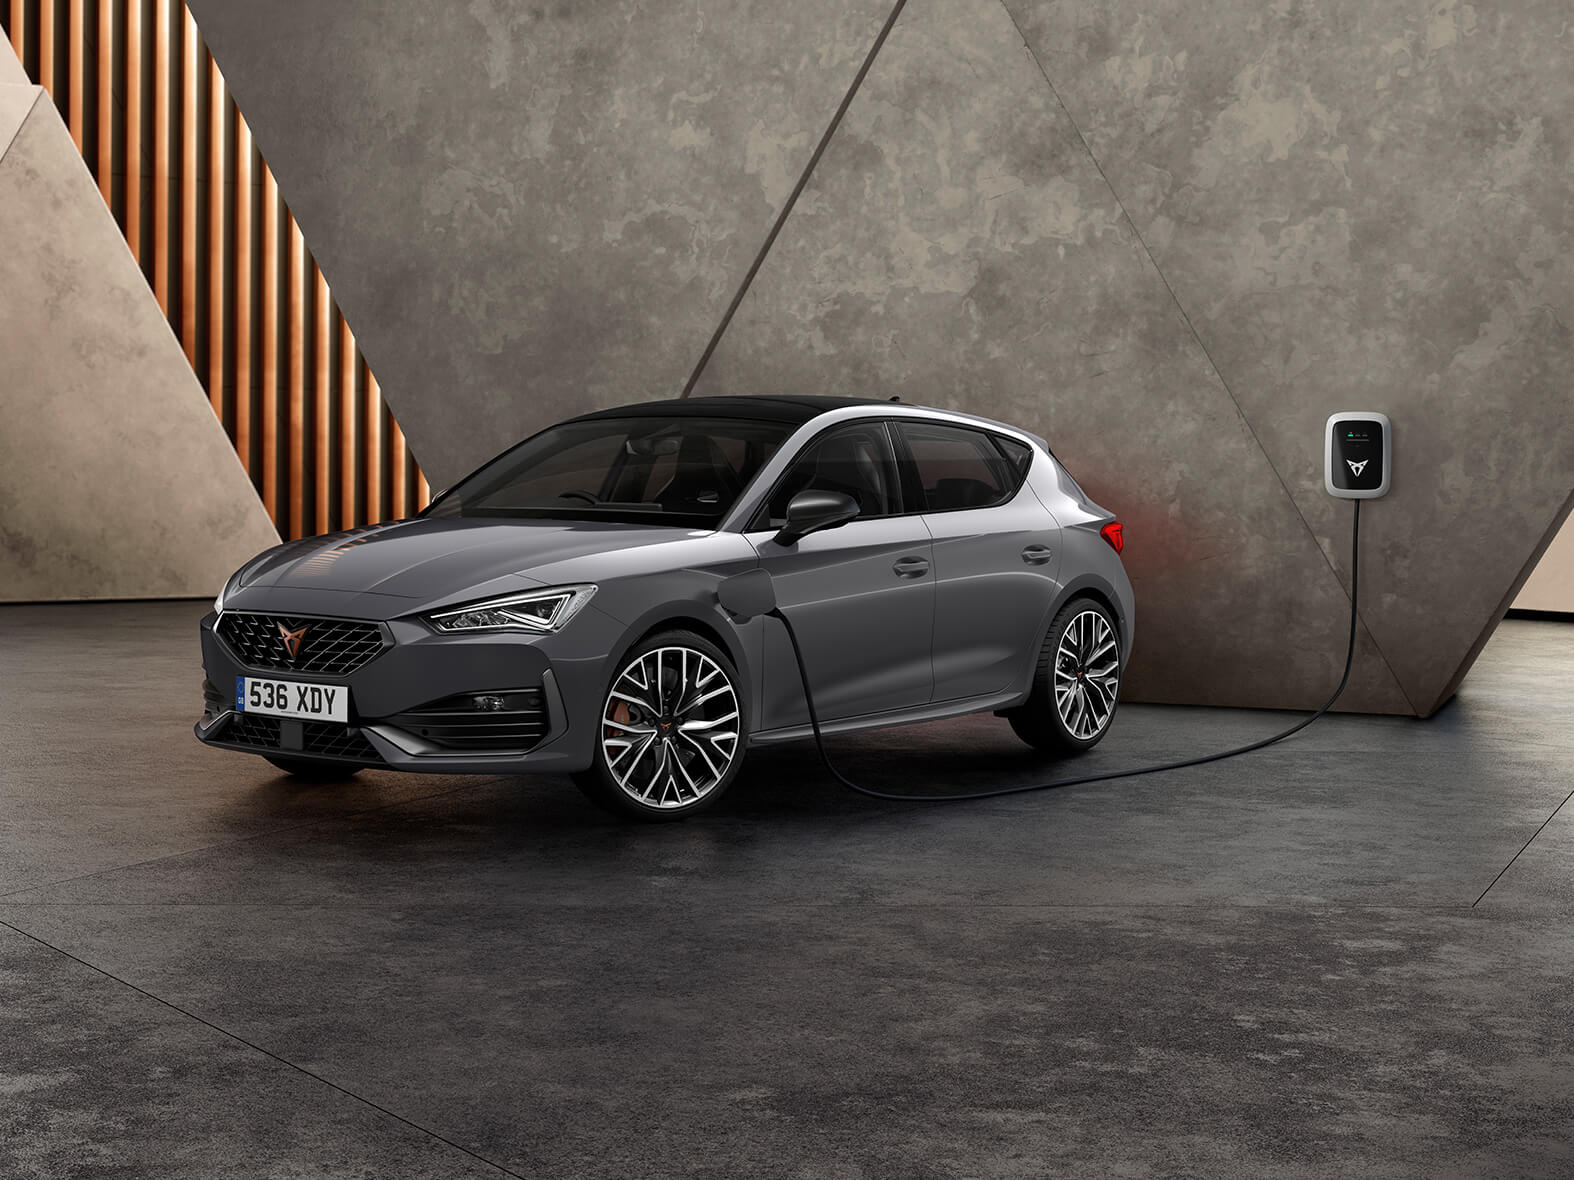 new CUPRA Leon ehybrid five door magnetic tech matte compact sports car front side view charging